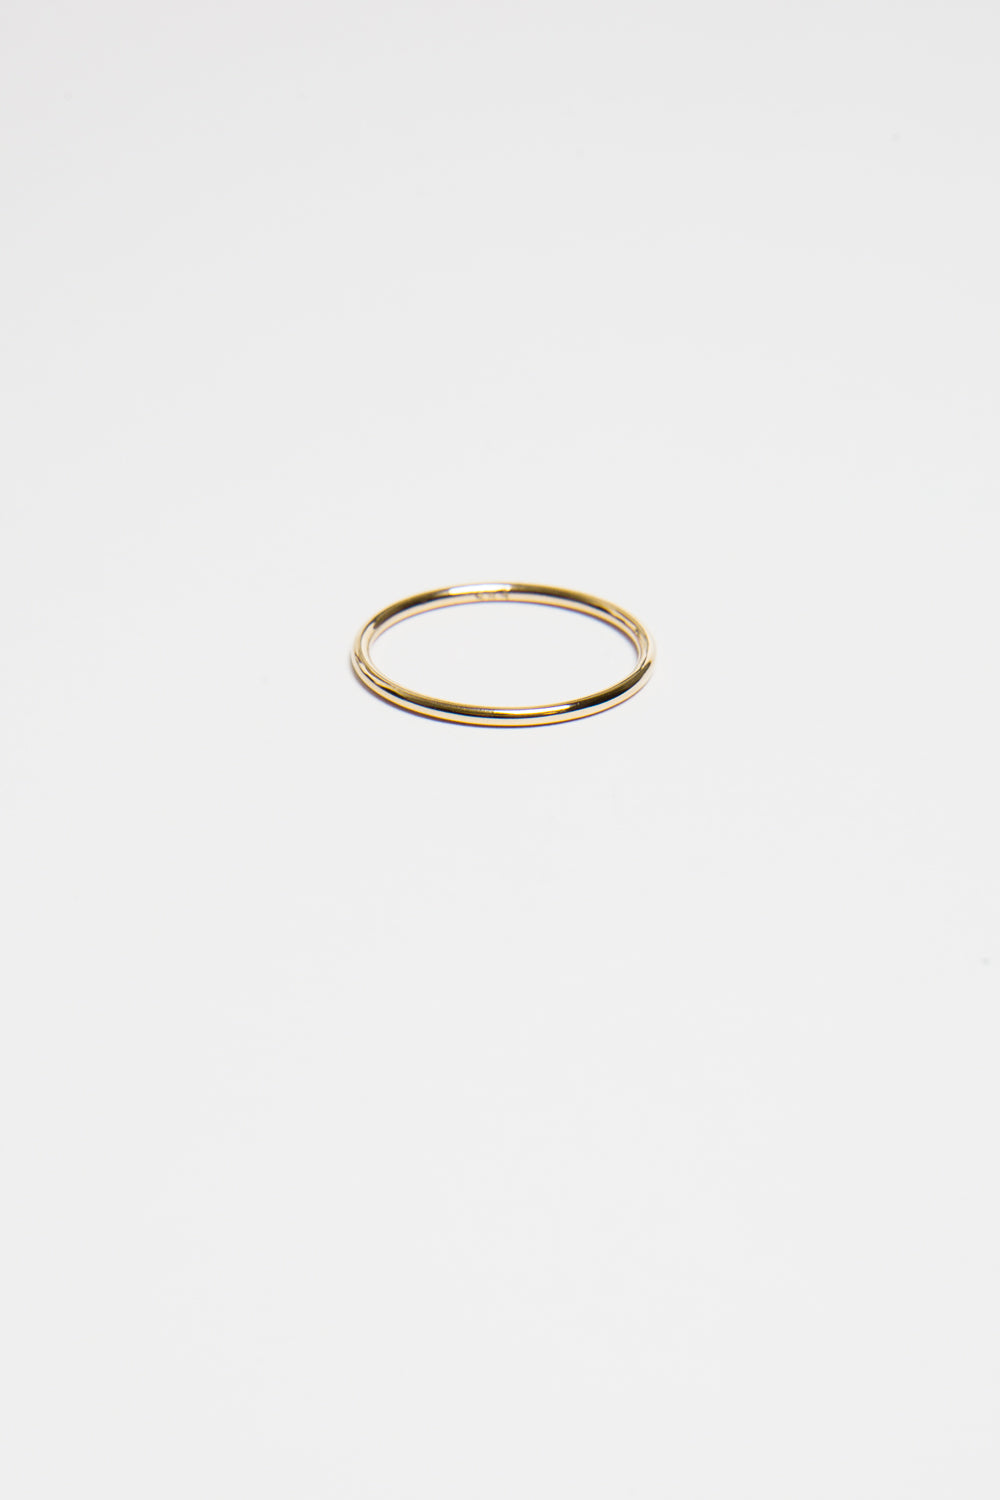 Ring No.20 by Johanna Gauder